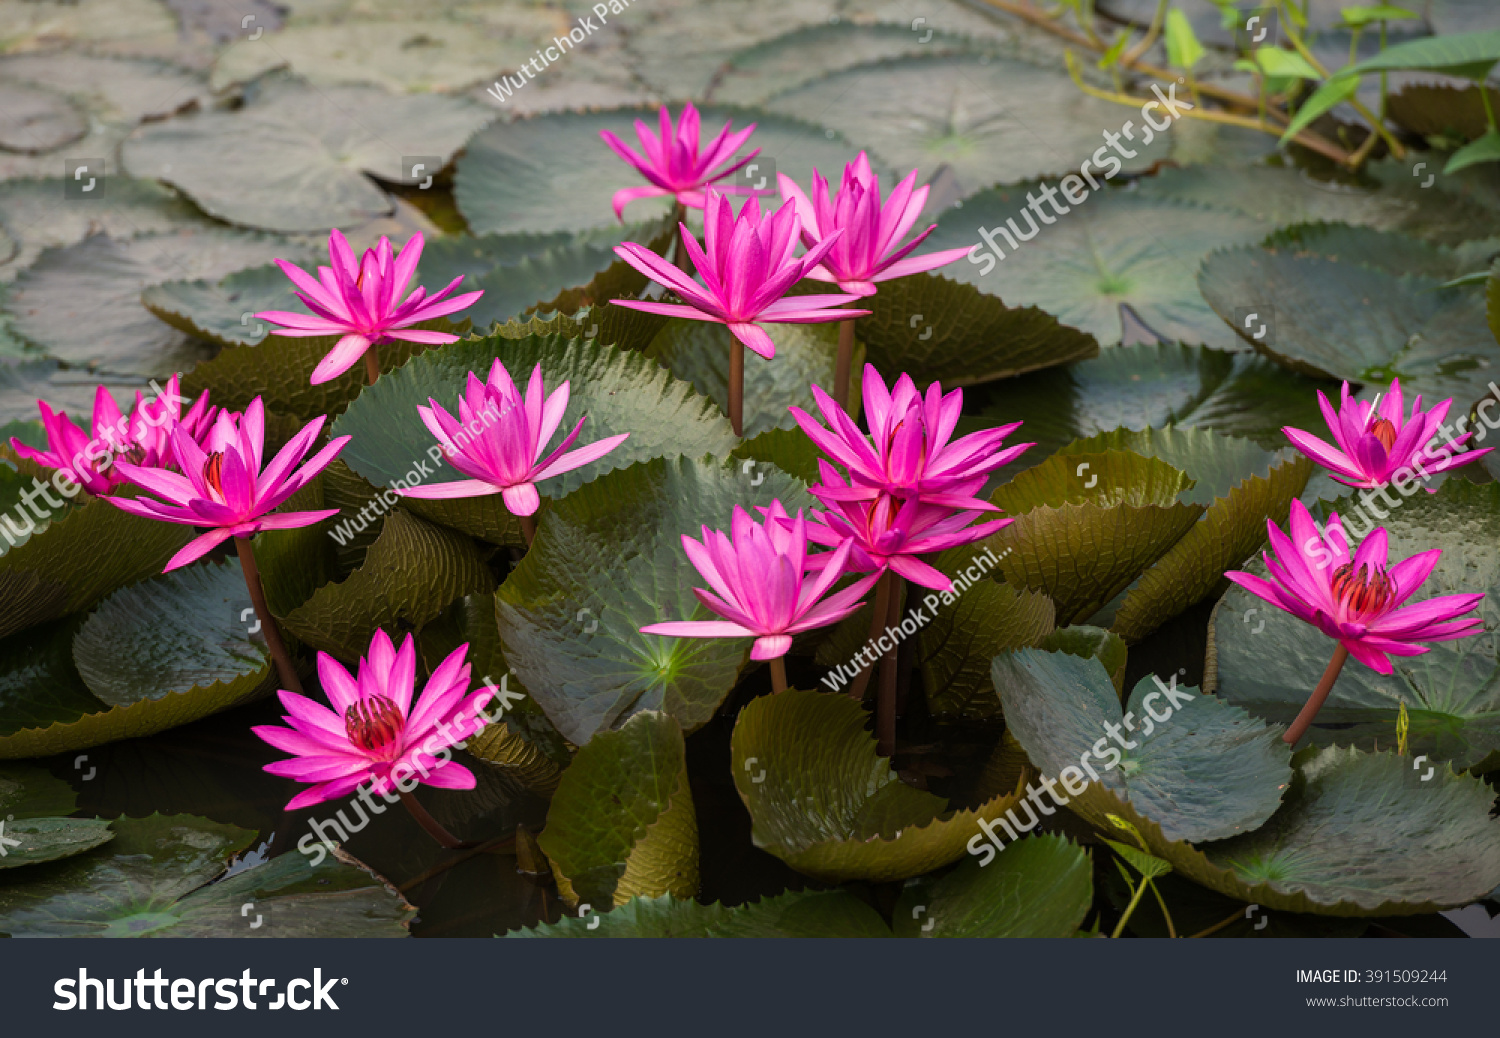 Close up pink color fresh lotus blossom or water lily flower close up pink color fresh lotus blossom or water lily flower blooming on pond background nymphaeaceae ez canvas izmirmasajfo